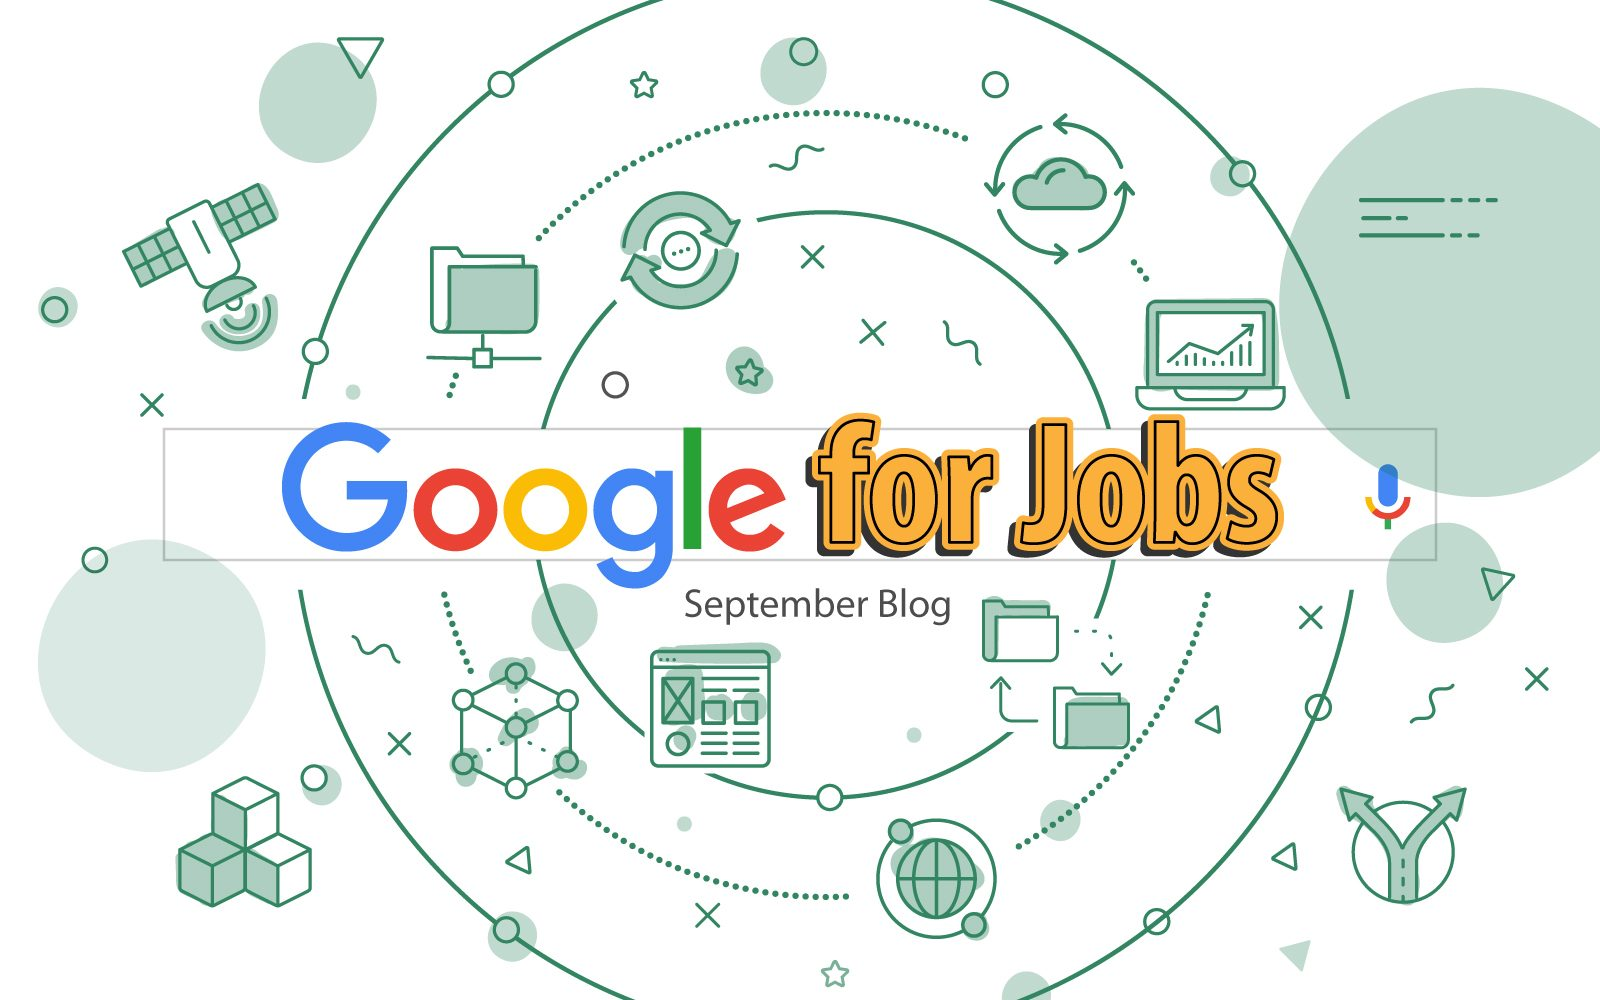 Google For Jobs Blog